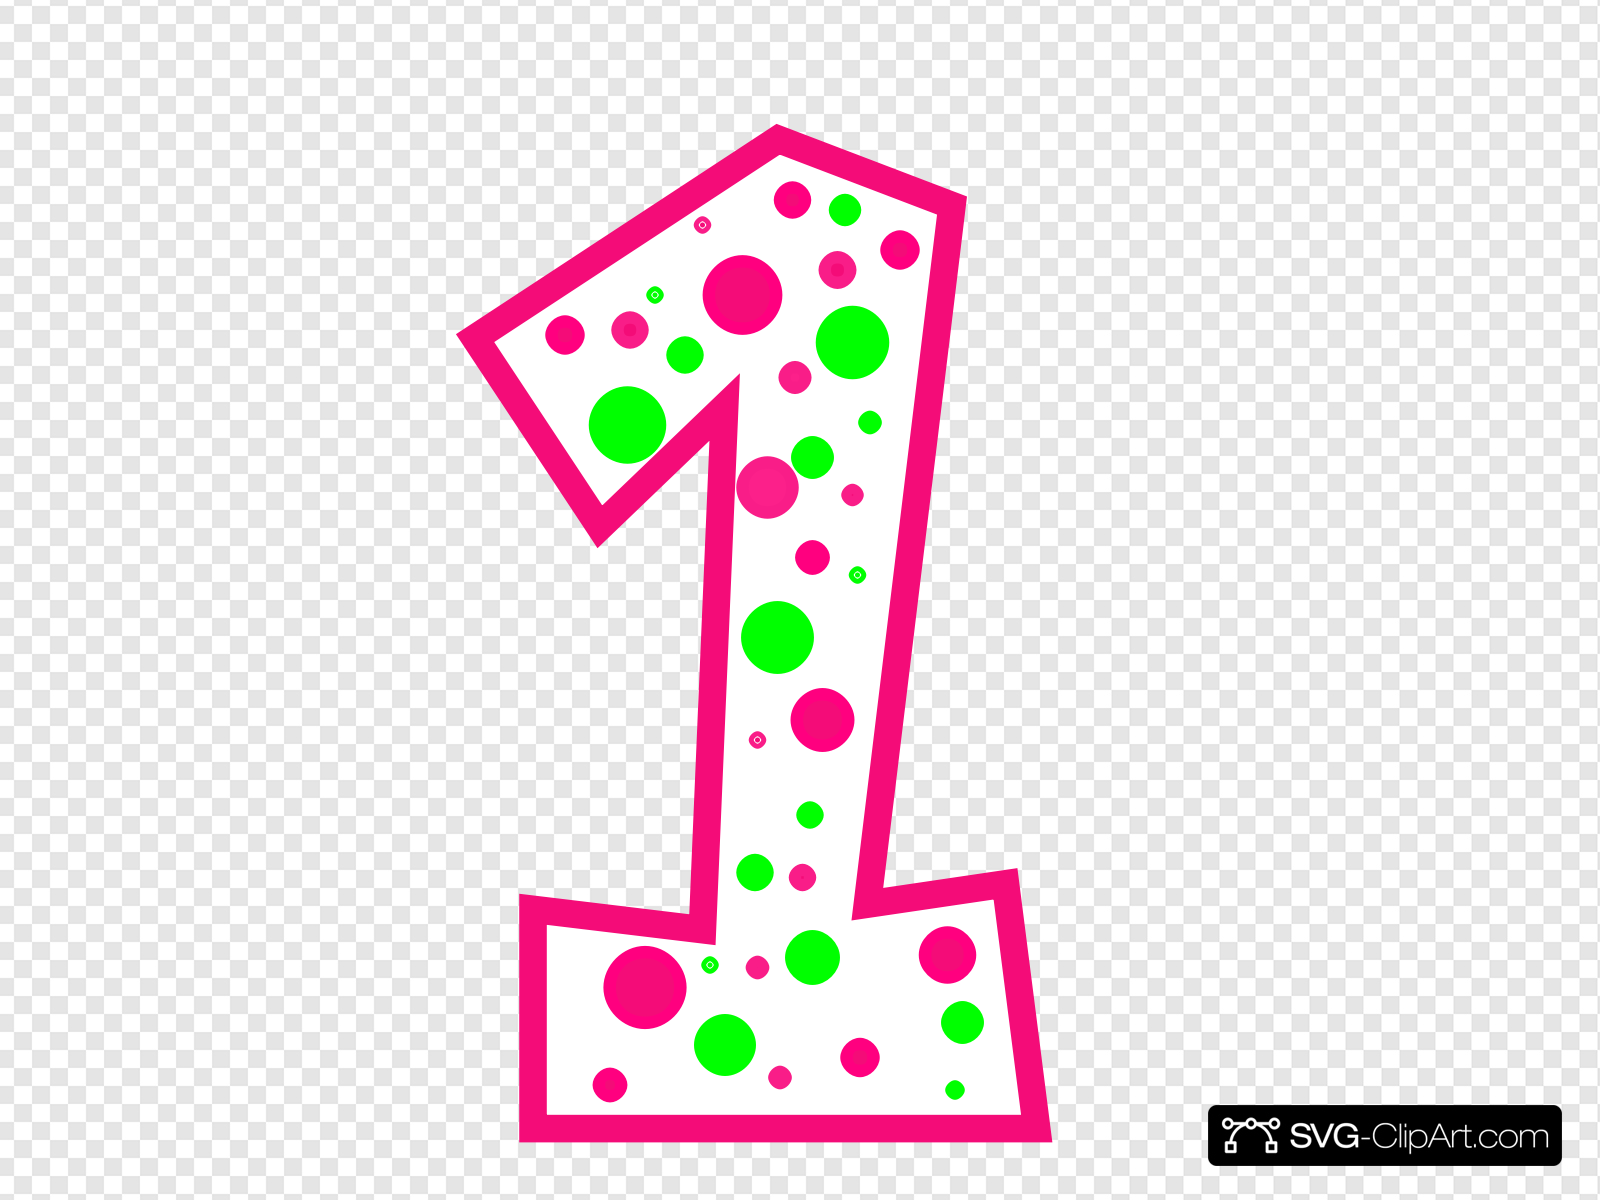 Number 1 Pink And Green Polkadot(r) Clip art, Icon and SVG.